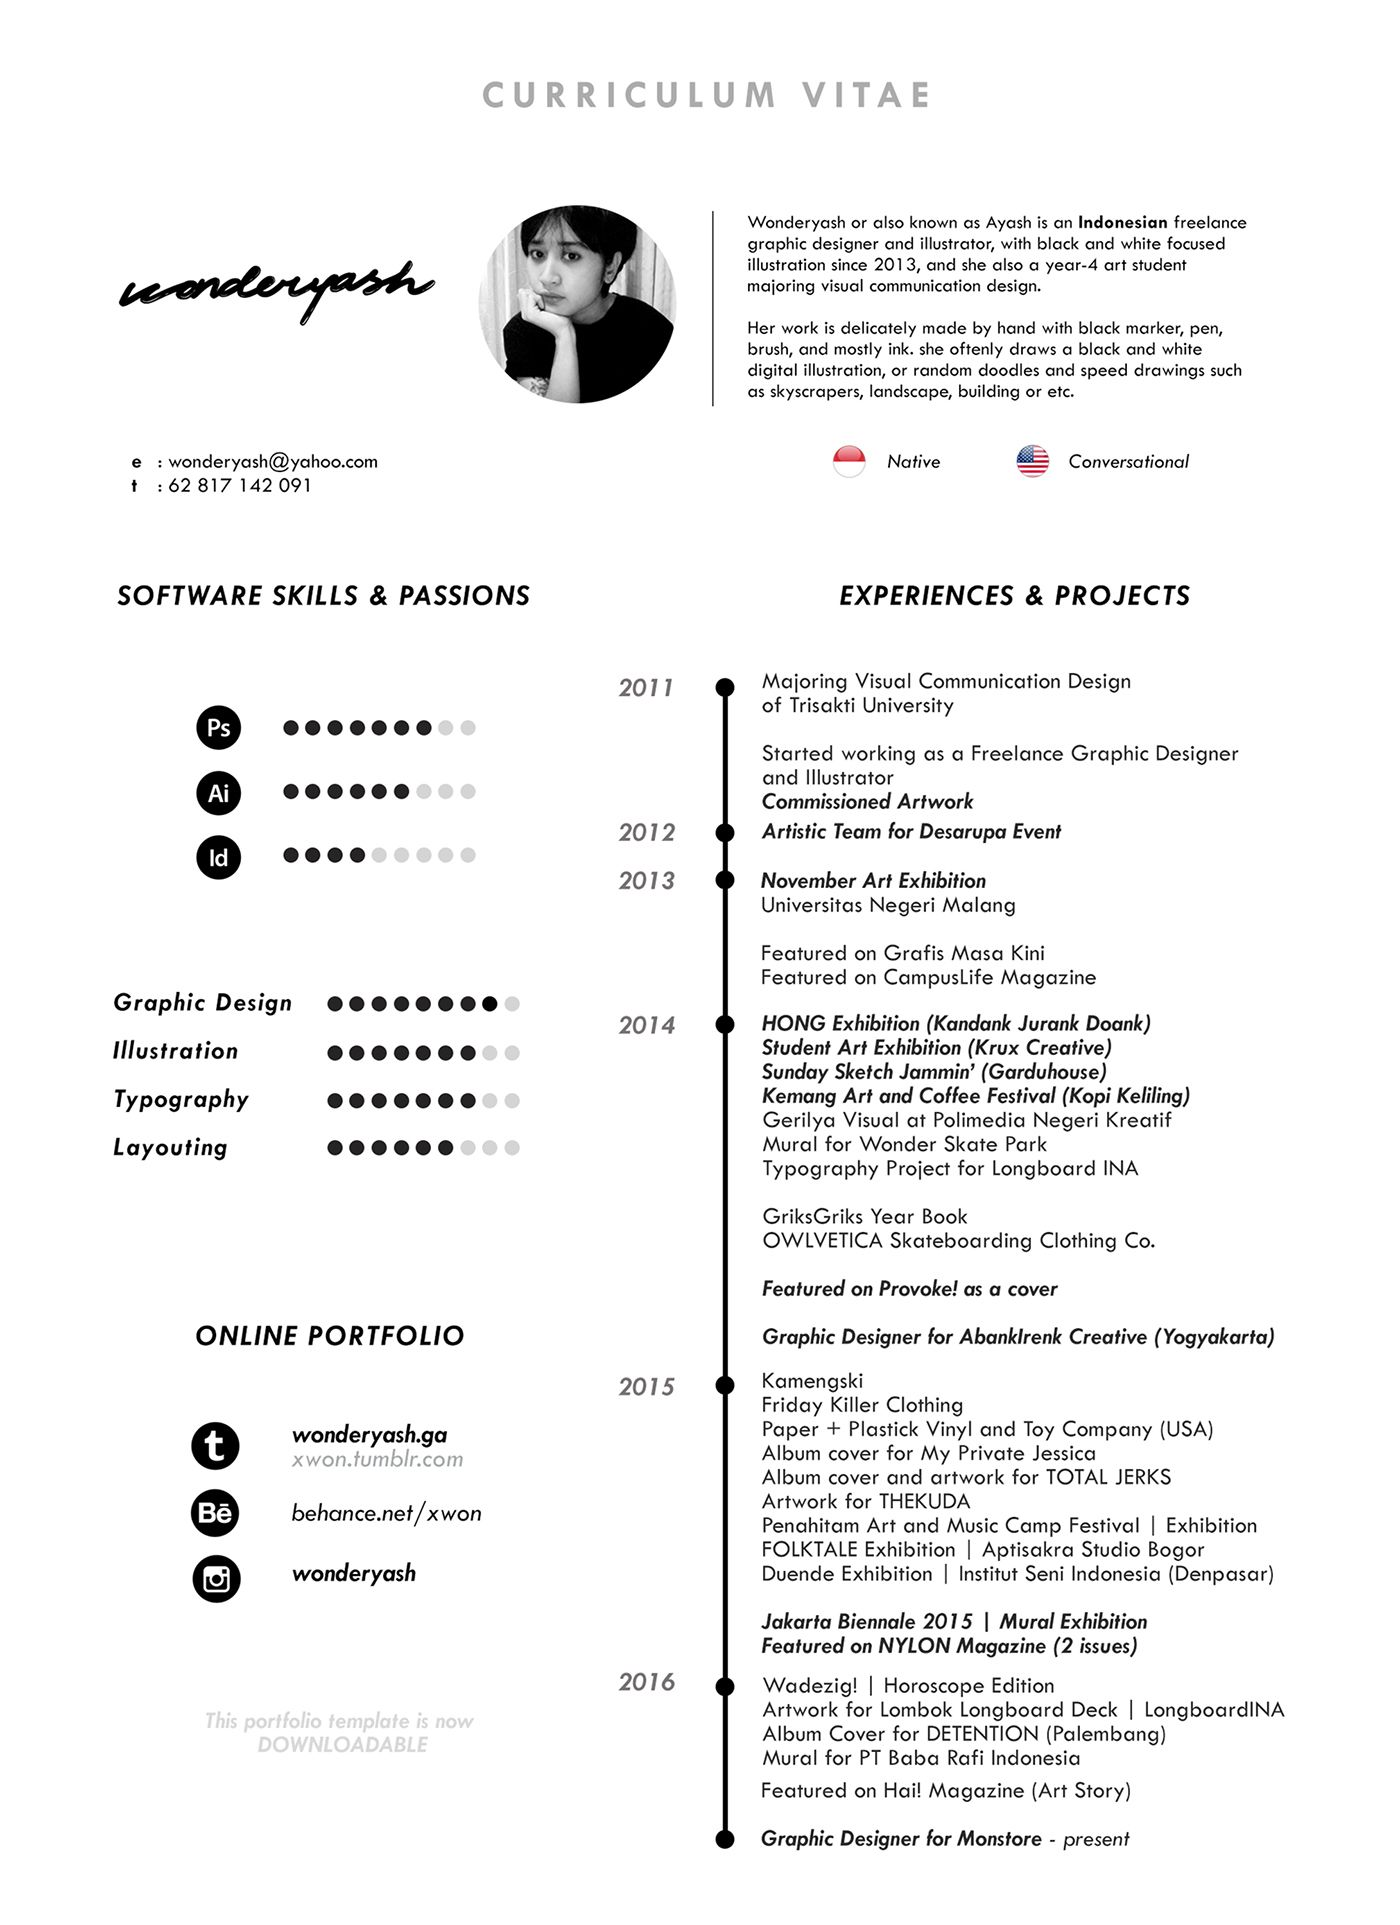 Curriculum Vitae Template: Available for Download. on Behance | cv ...